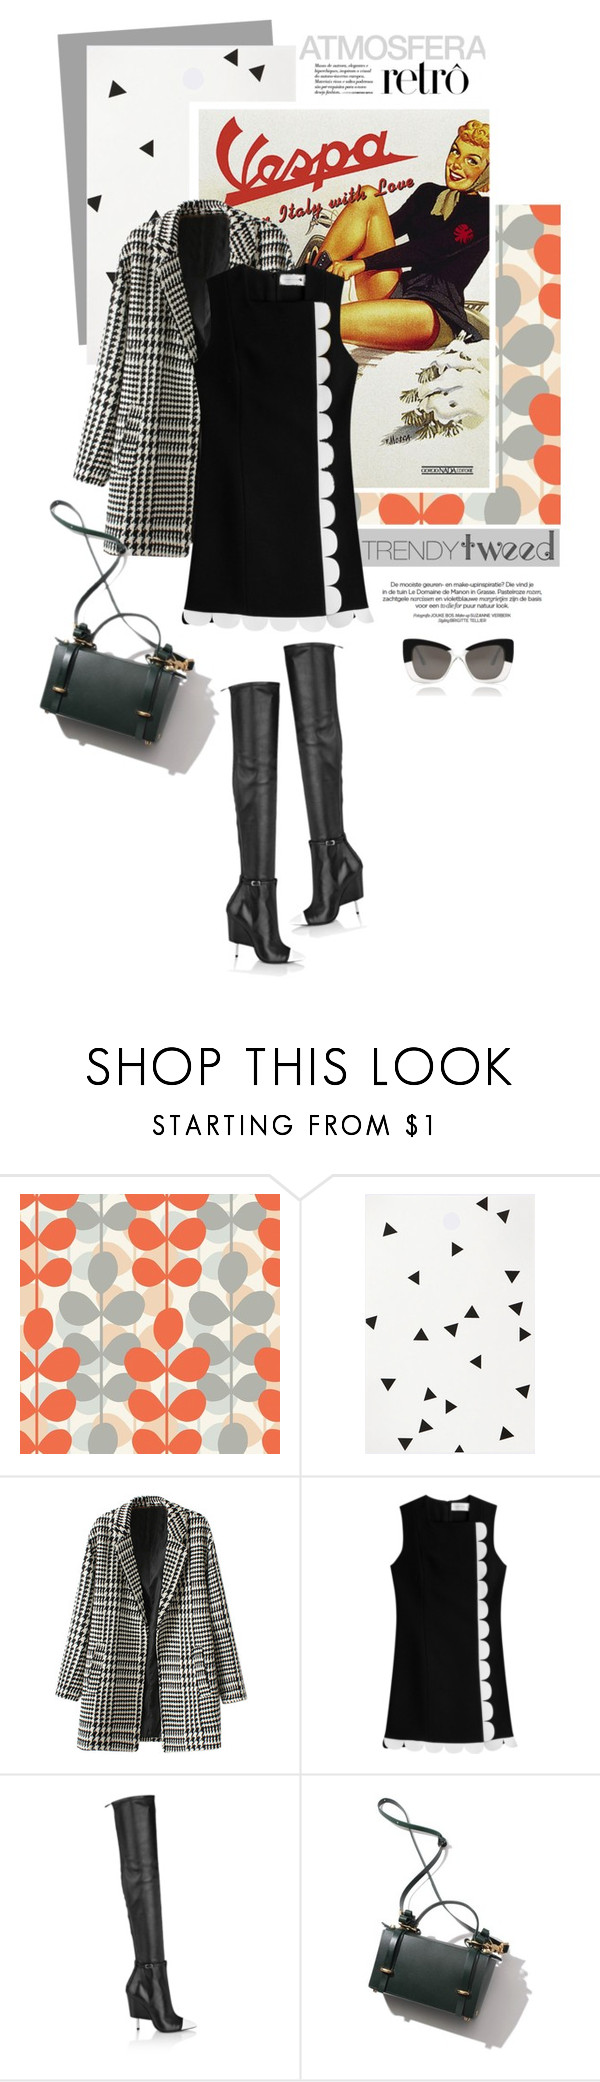 """""""Trendy Tweed"""" by pippi-loves-music ❤ liked on Polyvore featuring Retrò, ferm LIVING, Victoria, Victoria Beckham, Givenchy, Cutler and Gross, women's clothing, women, female, woman and misses"""